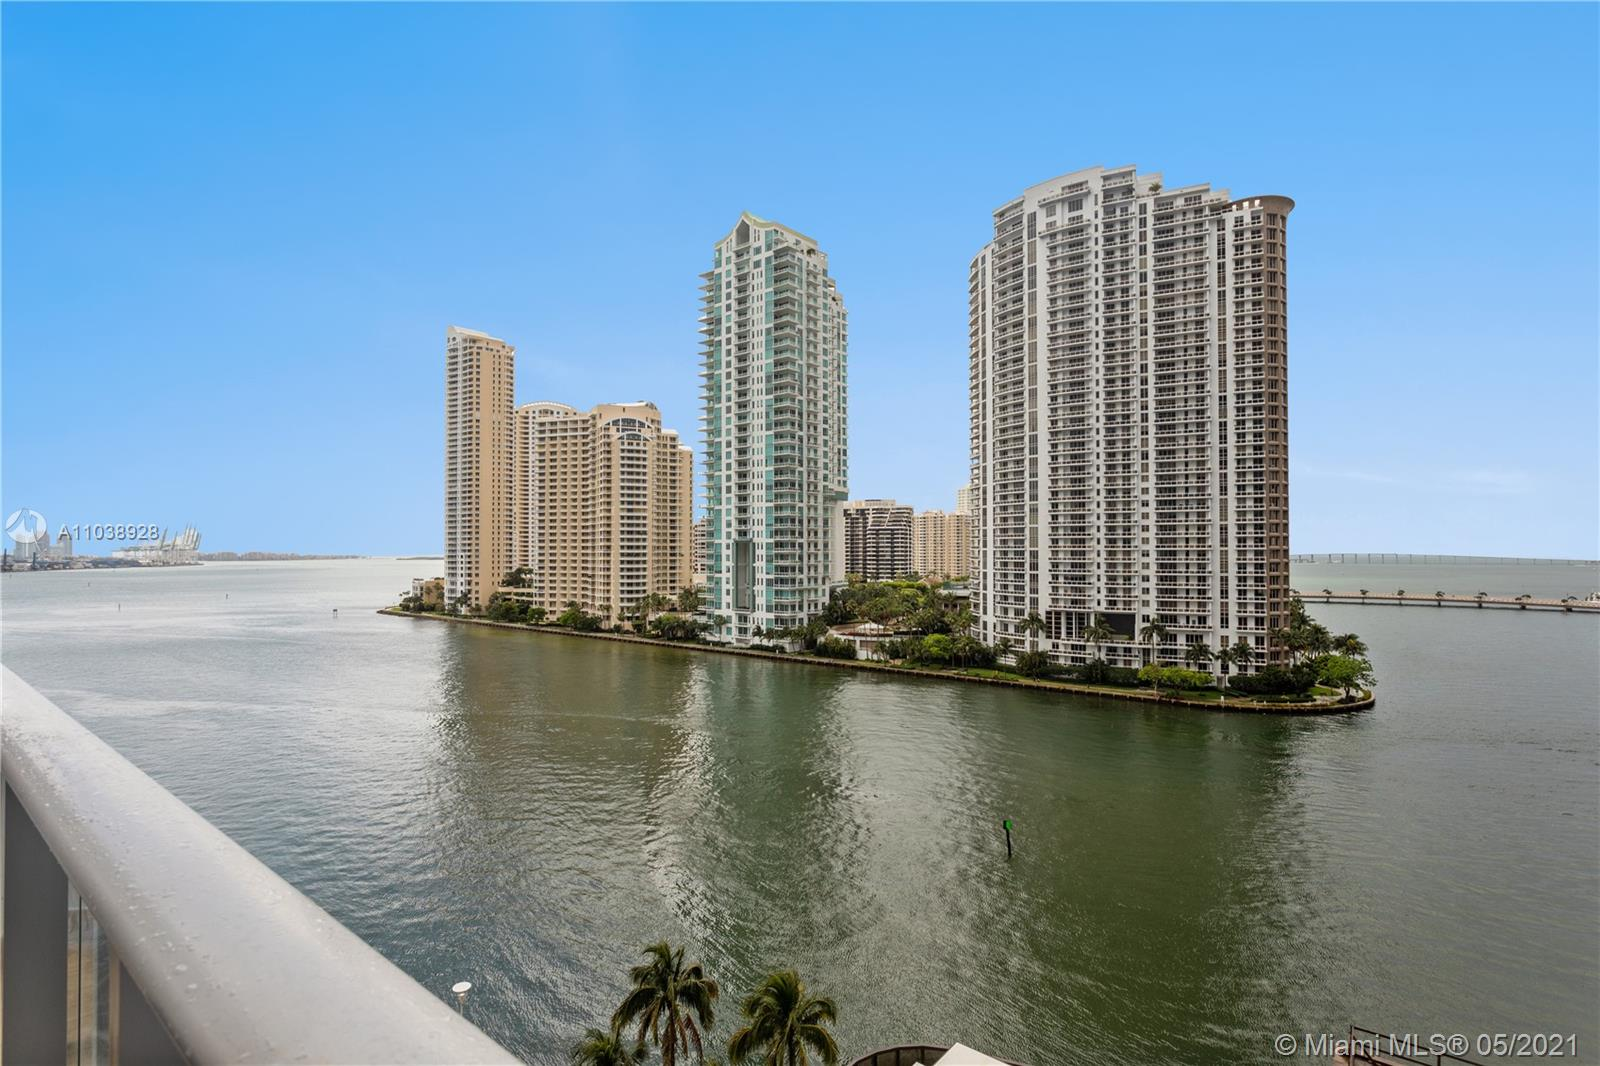 New York meets Miami in this waterfront split level loft at MET 1. Enjoy views of the Bay, the City, Brickell Key and Sunsets. Located in the center of Miami, between Downtown and Brickell, Met 1 represents the best location in terms of convenience. Within a block radius enjoy the best restaurants, shops, bars and everything the Magic city has to offer. Unit is in pristine condition.